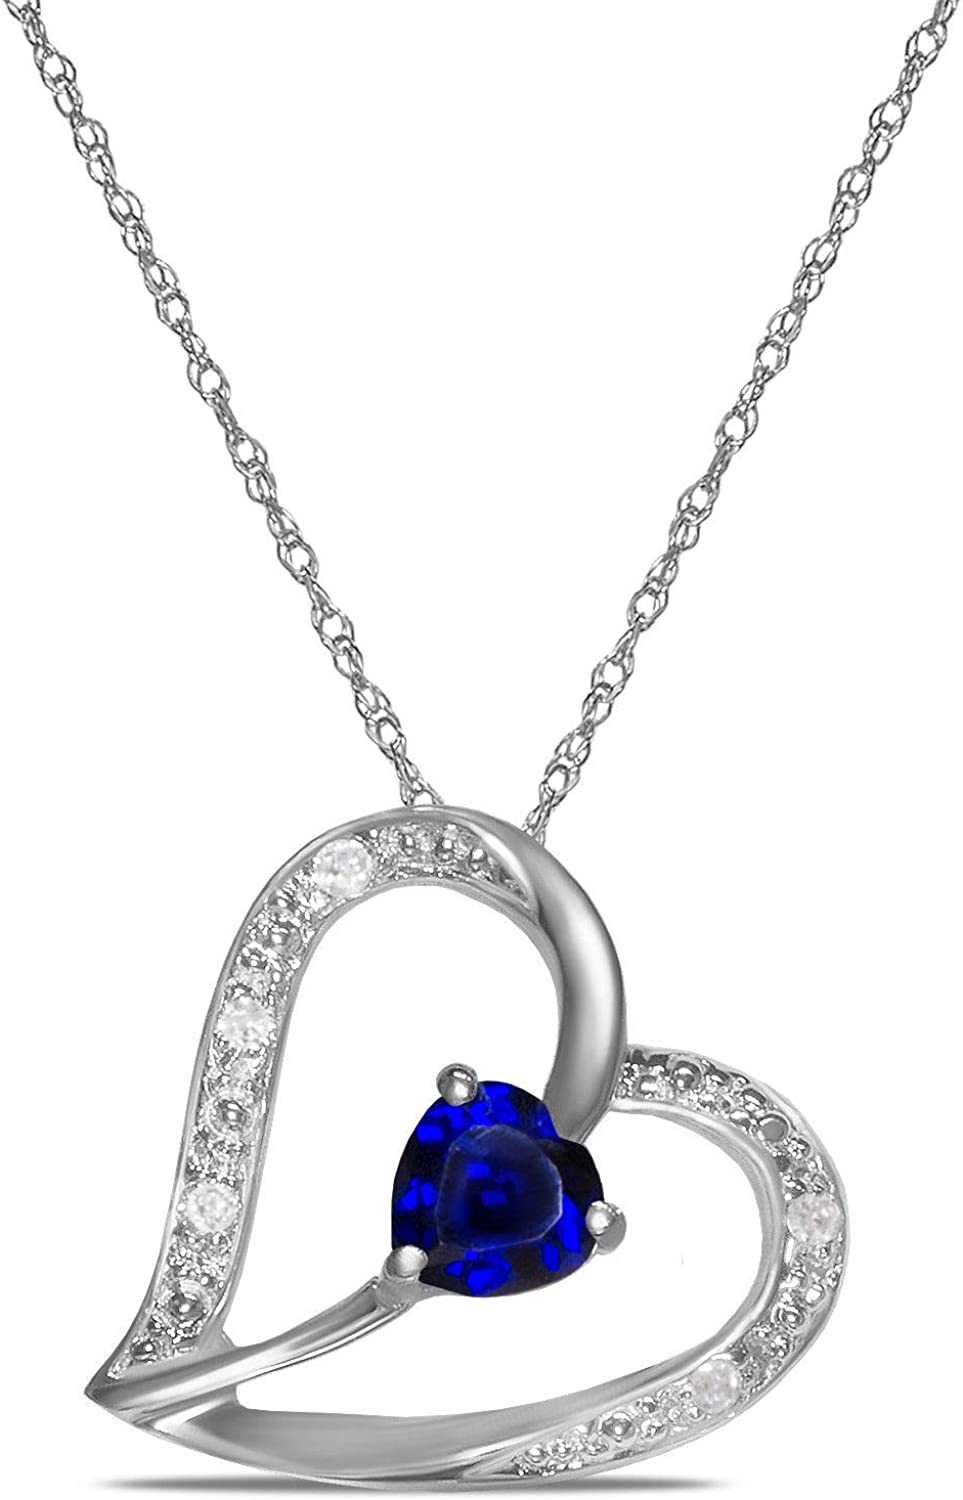 Royal Jewelz Diamond Accent Tilted Heart Pendant Necklace with Heart shape Lab-Created Gemstone in 10k White or Yellow Gold. Comes with 10k Gold Chain.